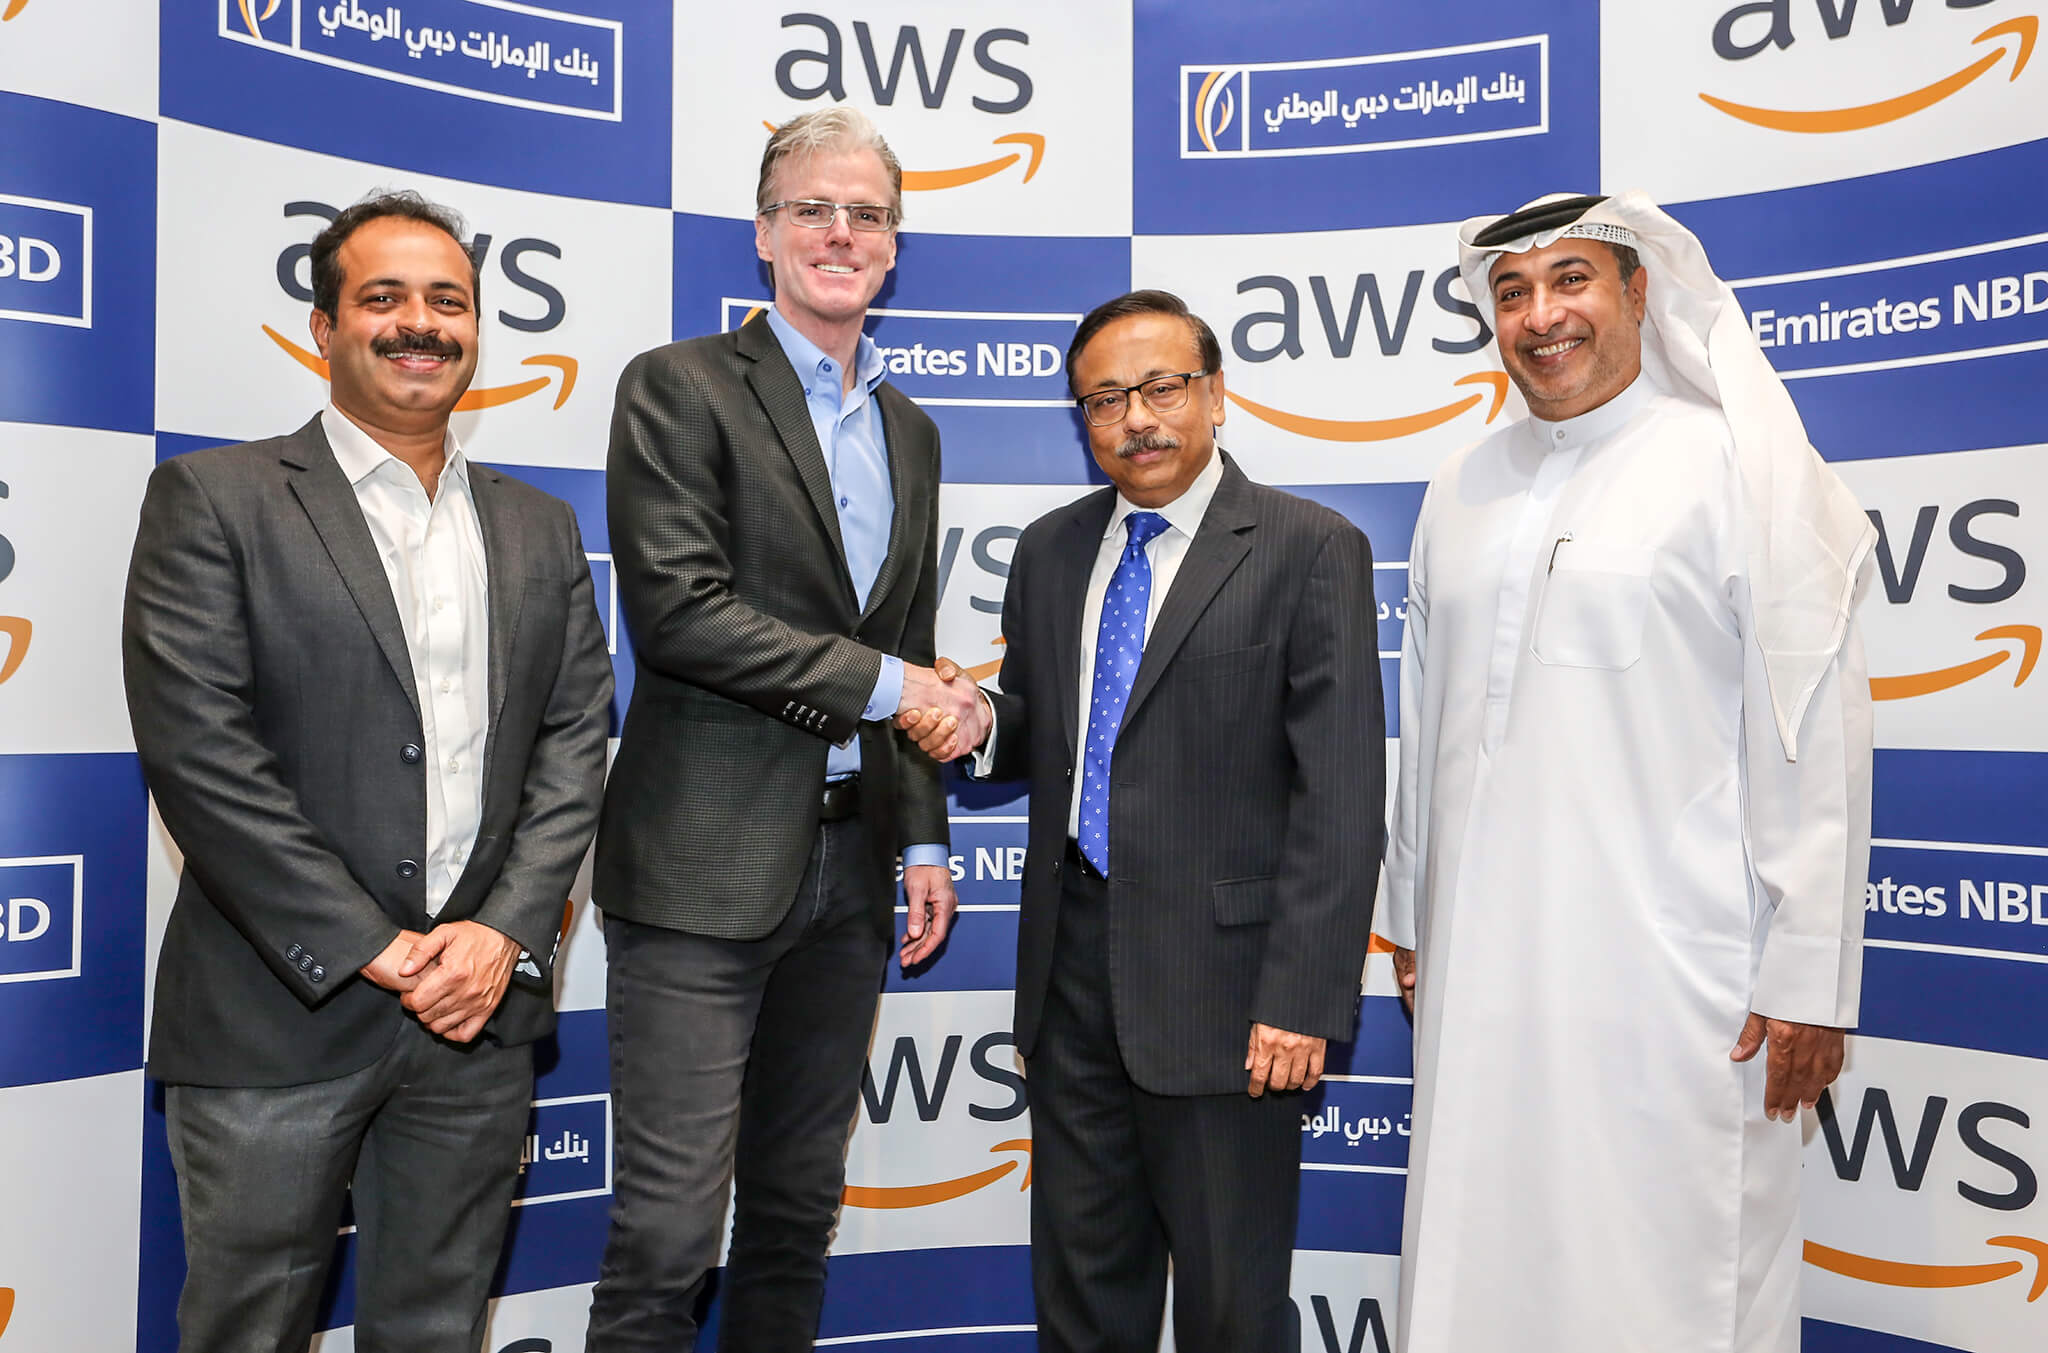 Emirates NBD parters with AWS | TahawulTech com